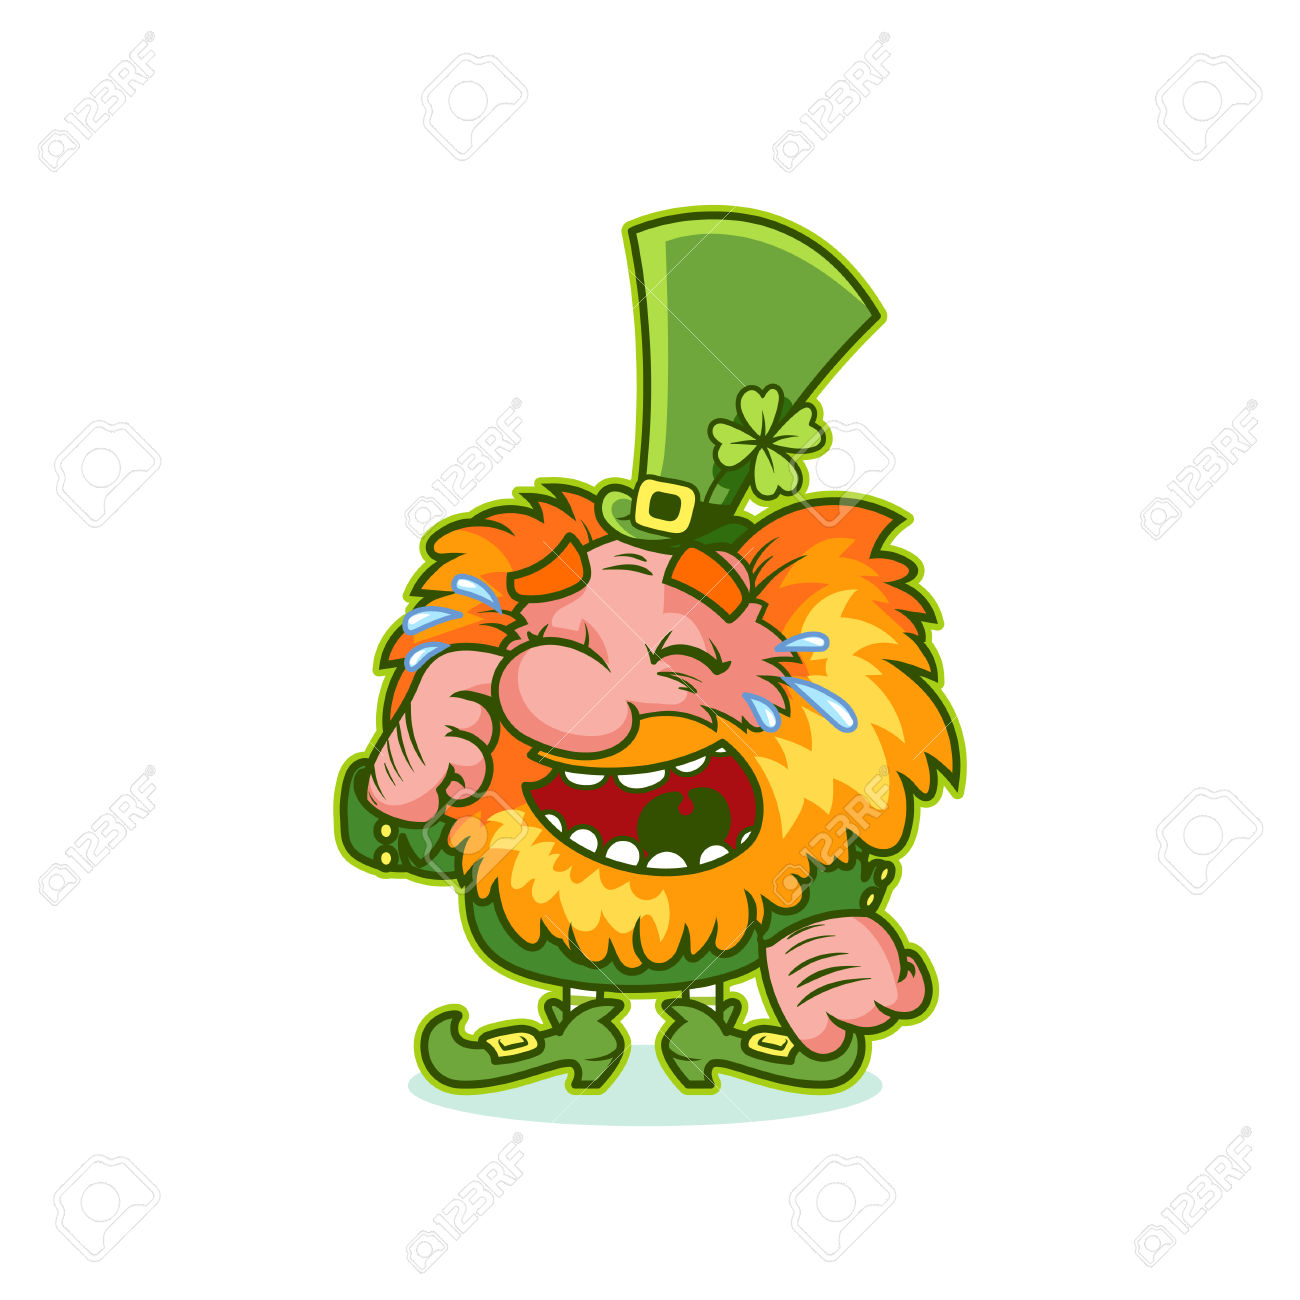 Laughing Leprechaun In Green Costume. Funny Cartoon Character.